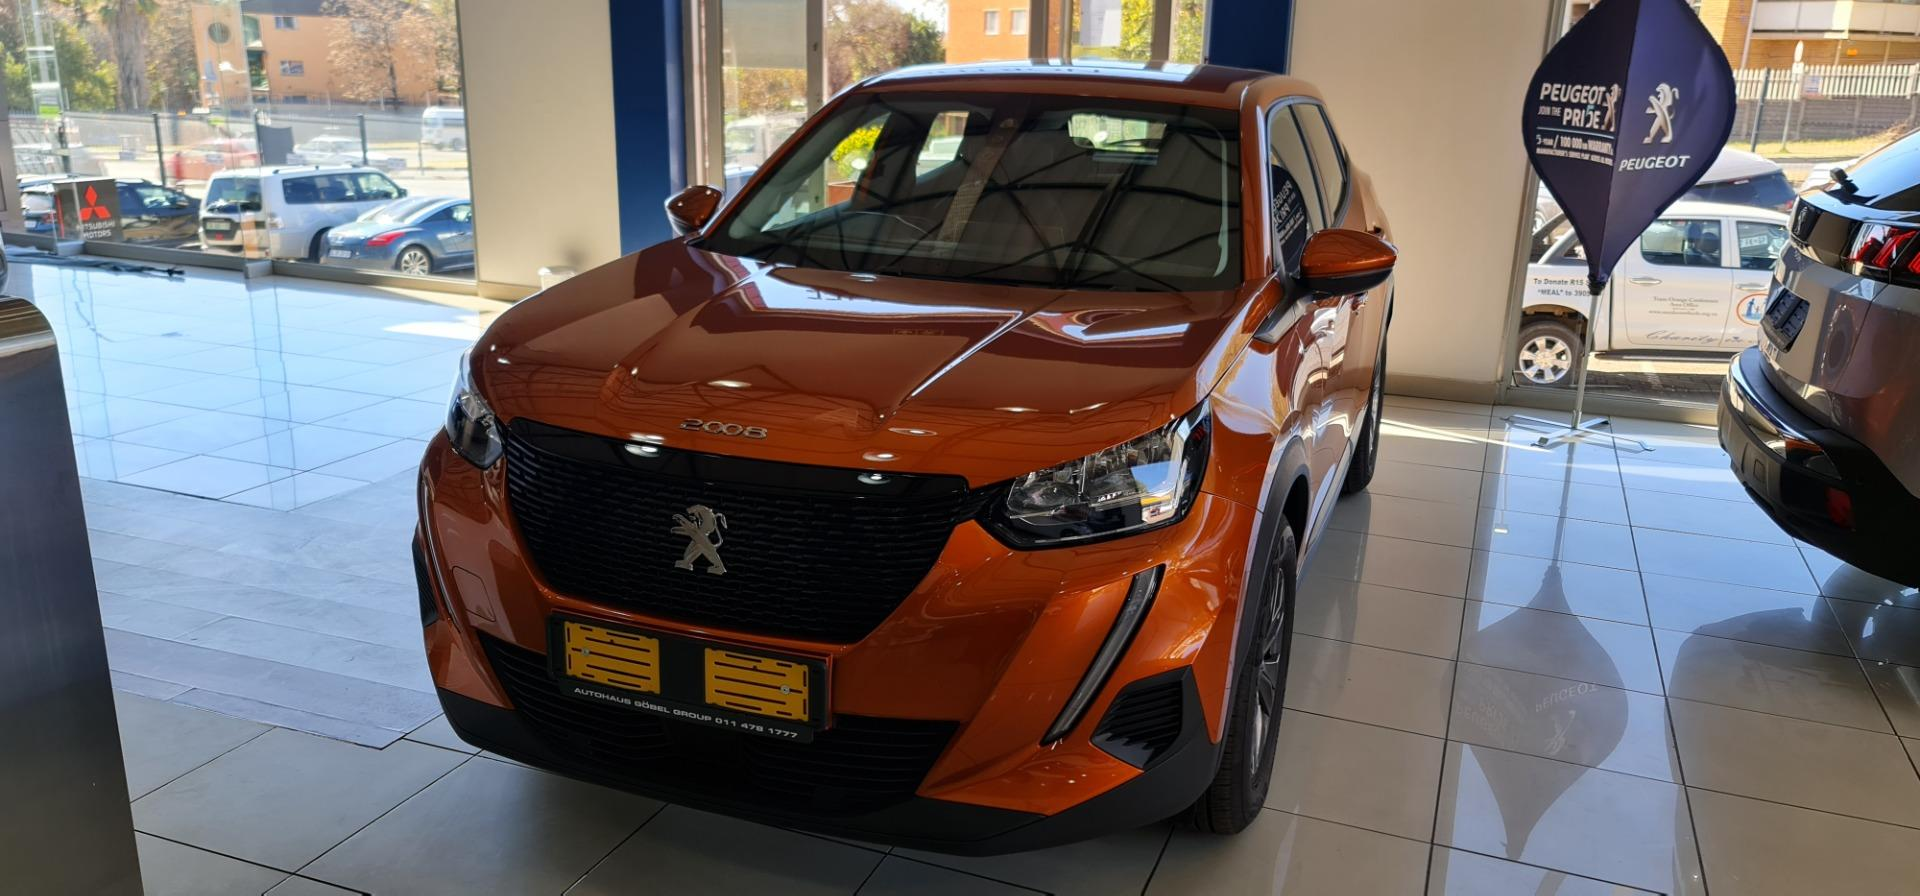 2021 Peugeot 2008 MY21.2 1.2T Active At